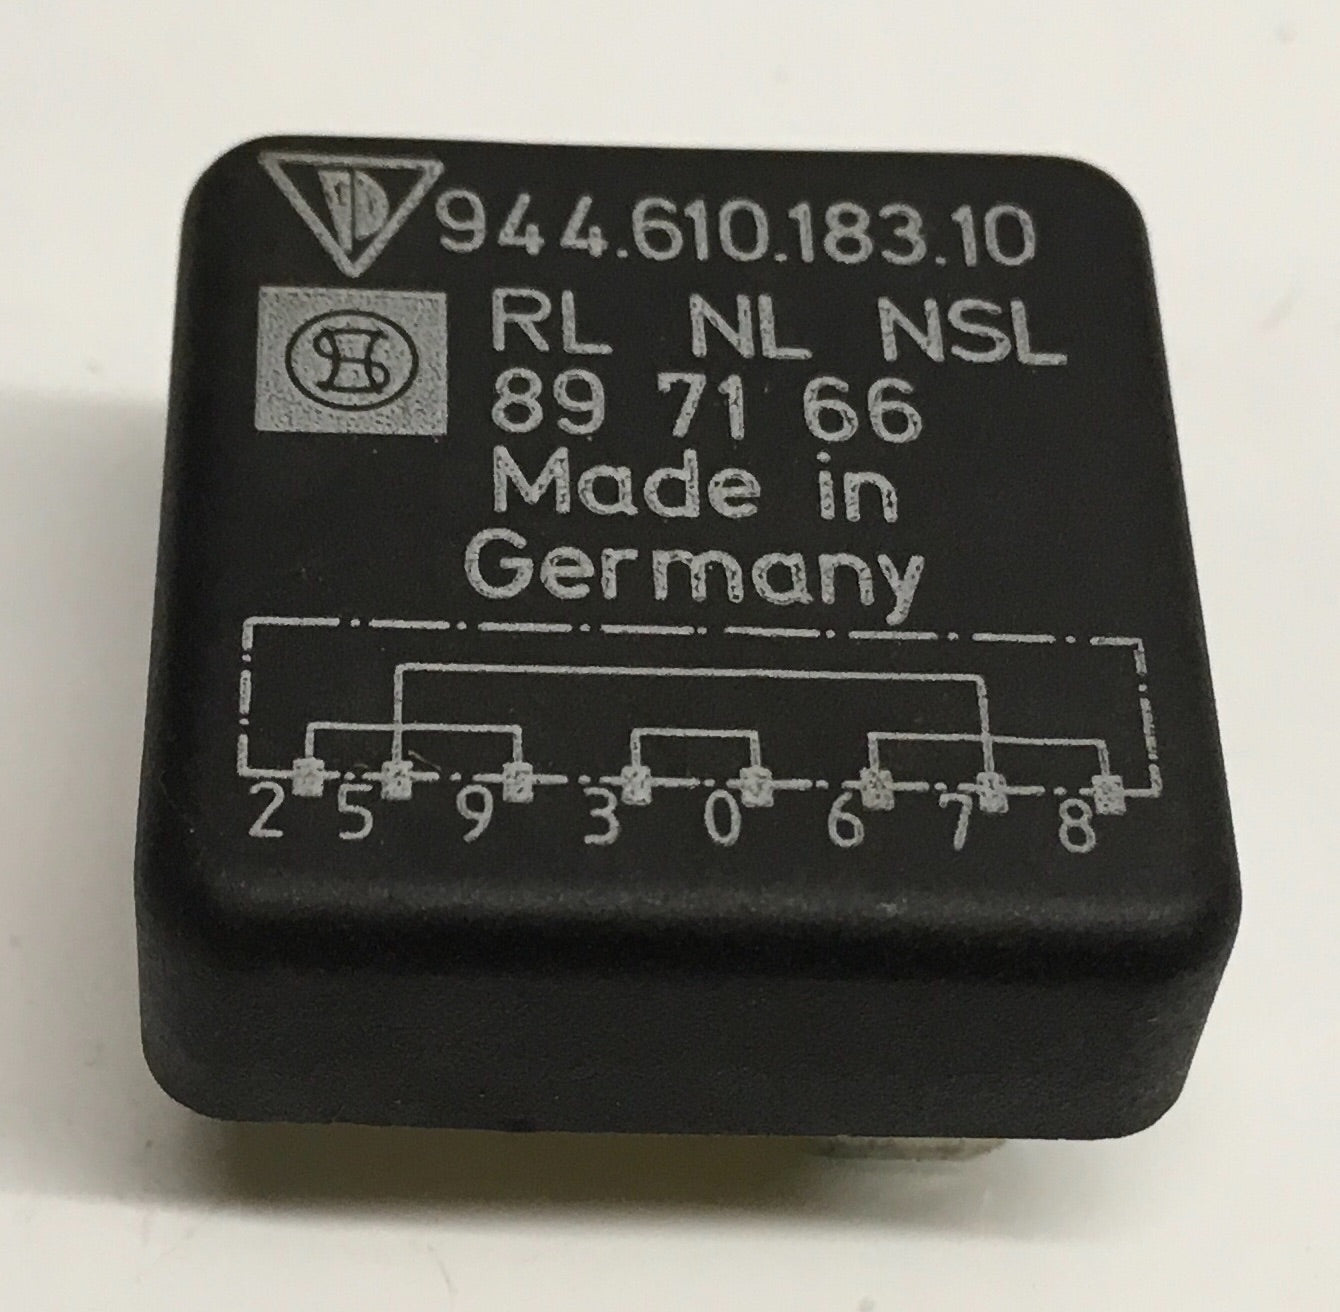 Porsche 944 bridge adapter Relay 94461018310. 944 610 183 10. ((LB202A) - Woolies Workshop - Porsche 924 944 spares